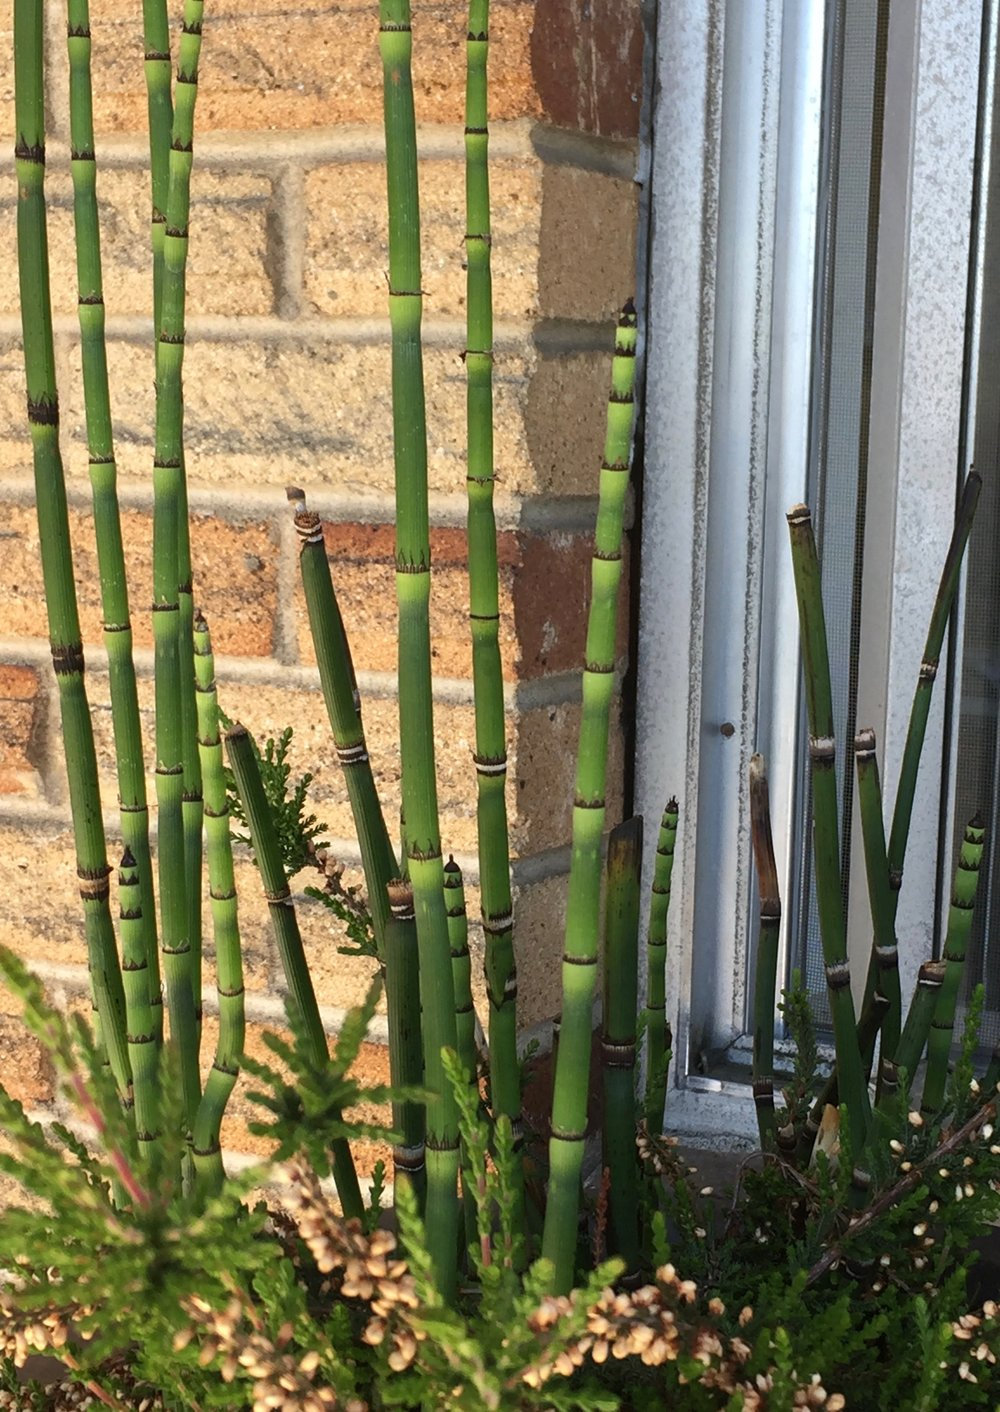 Stems of rough horsetail (Equisetum hyemale) rising above another plant in a pot.  Small greenish-blackish leaves are formed at each node.